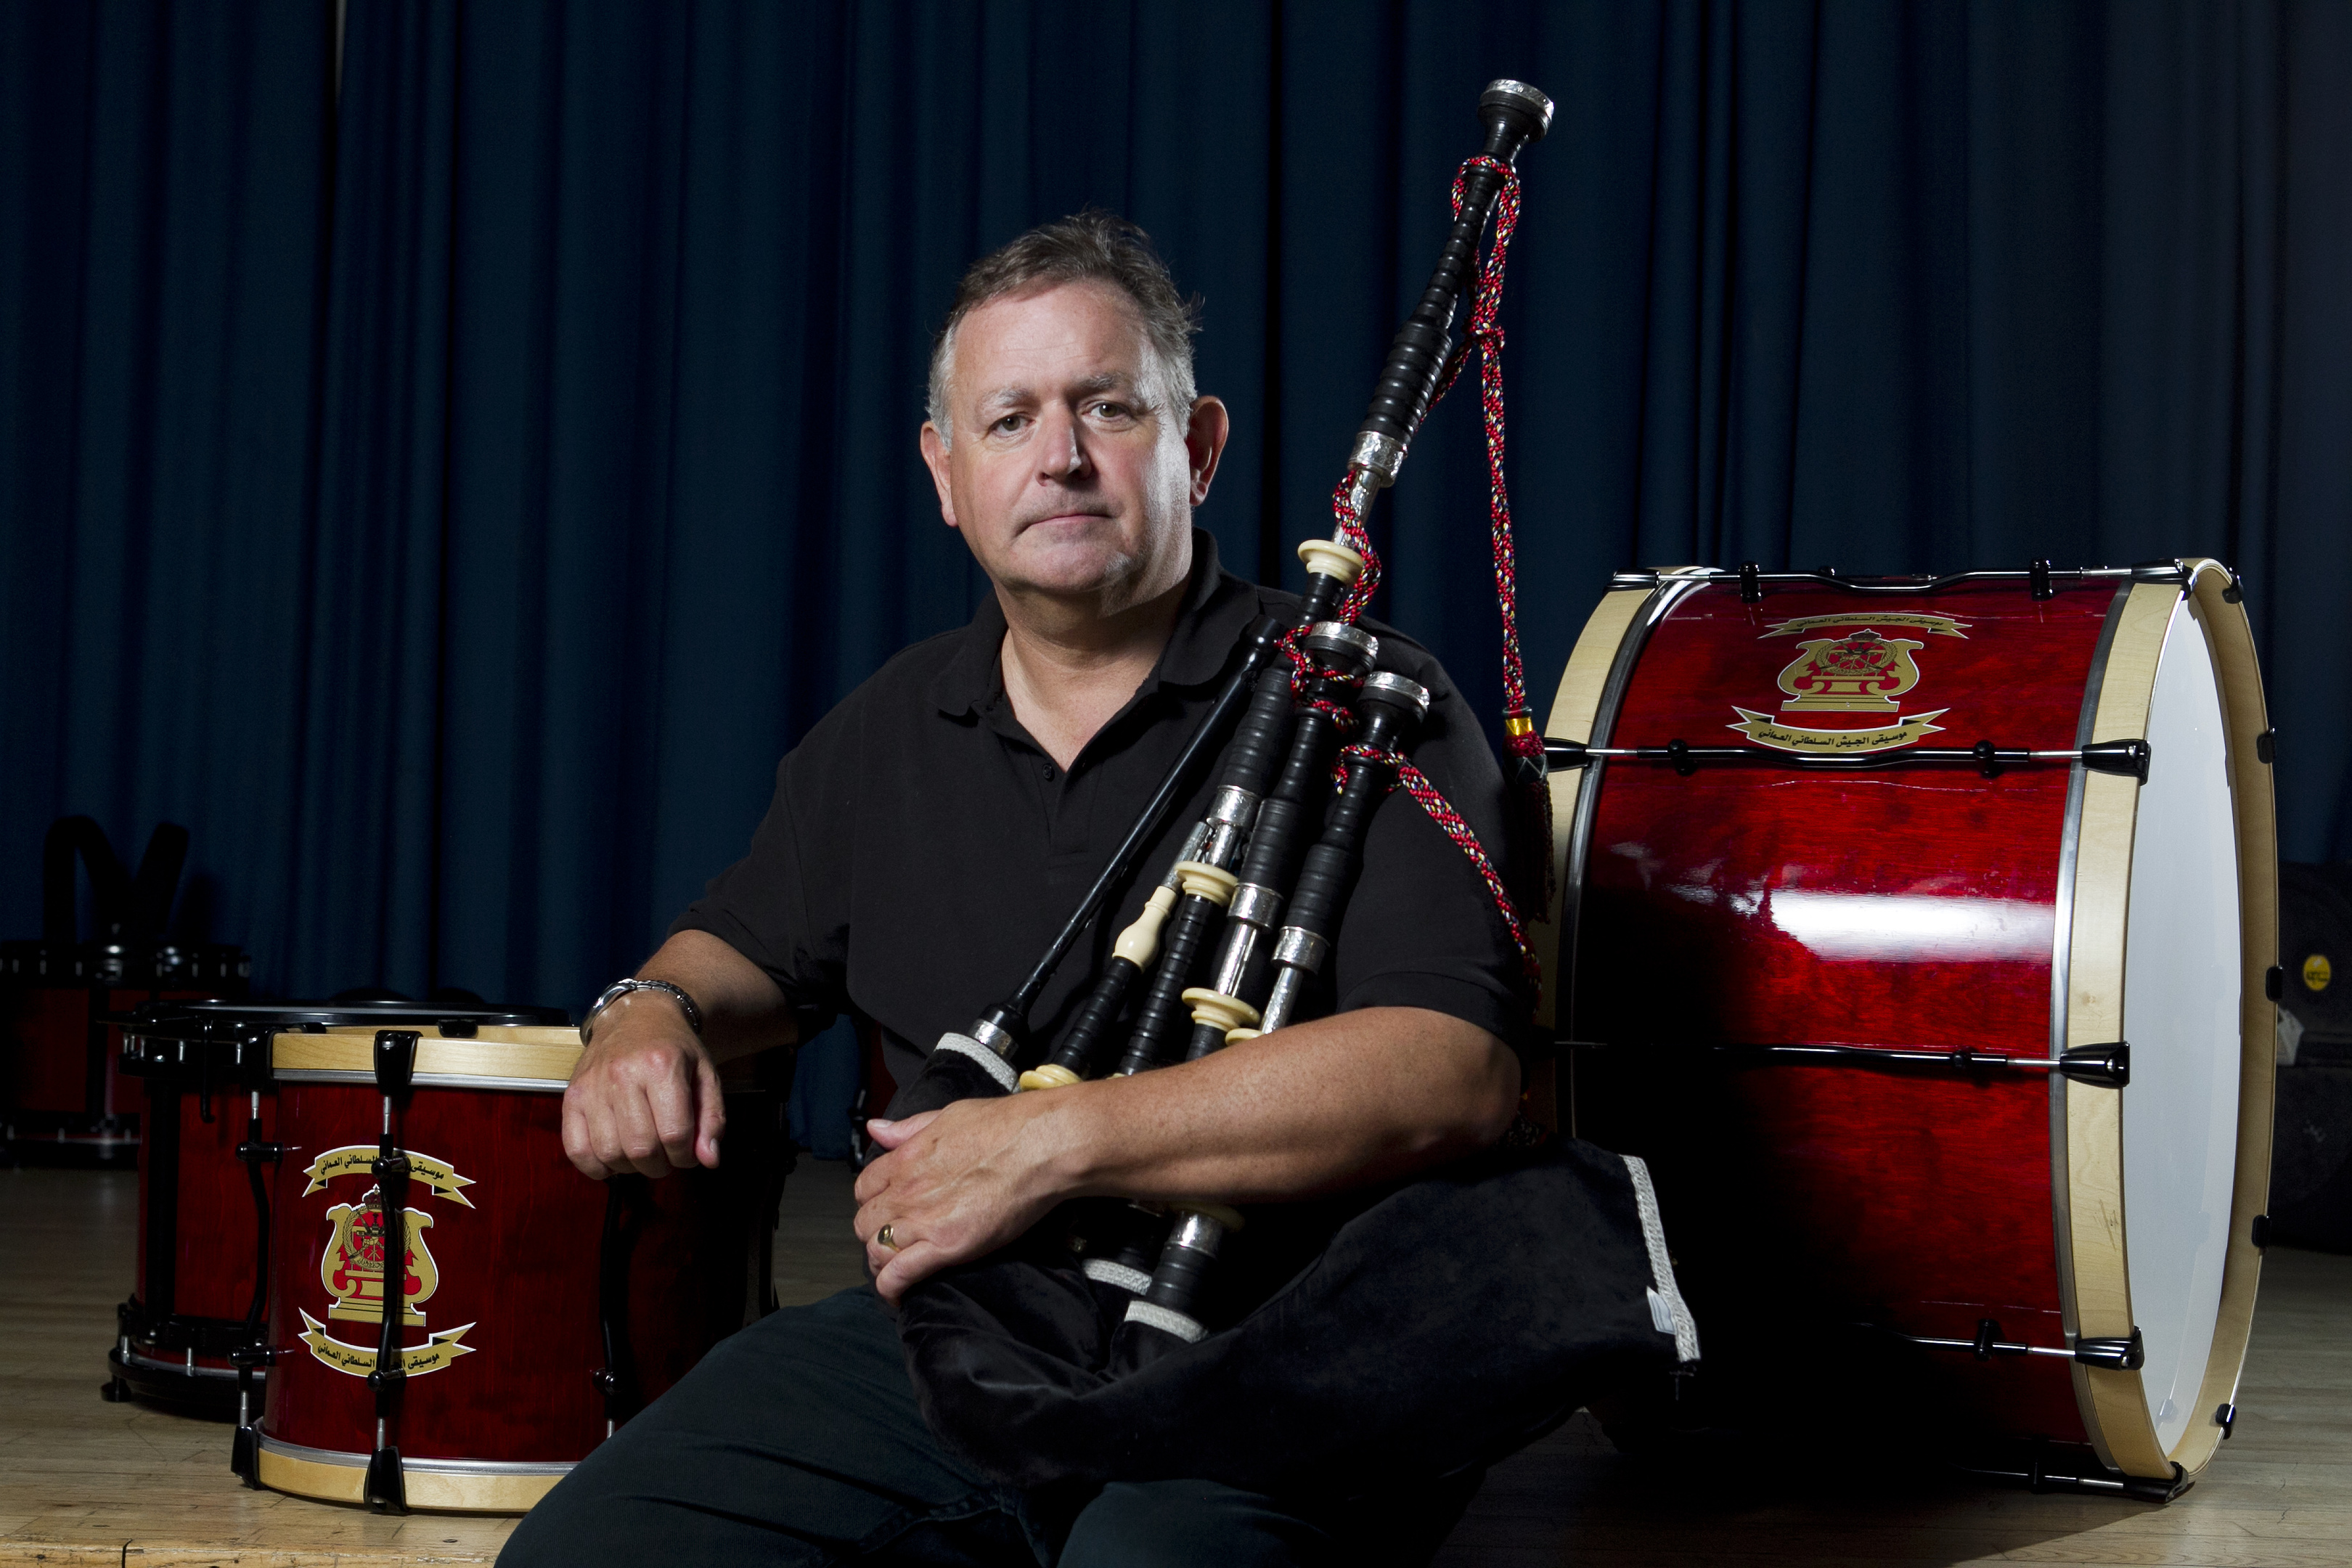 Roddy MacLeod, principal of the Glasgow Piping Centre (Andrew Cawley / DC Thomson)